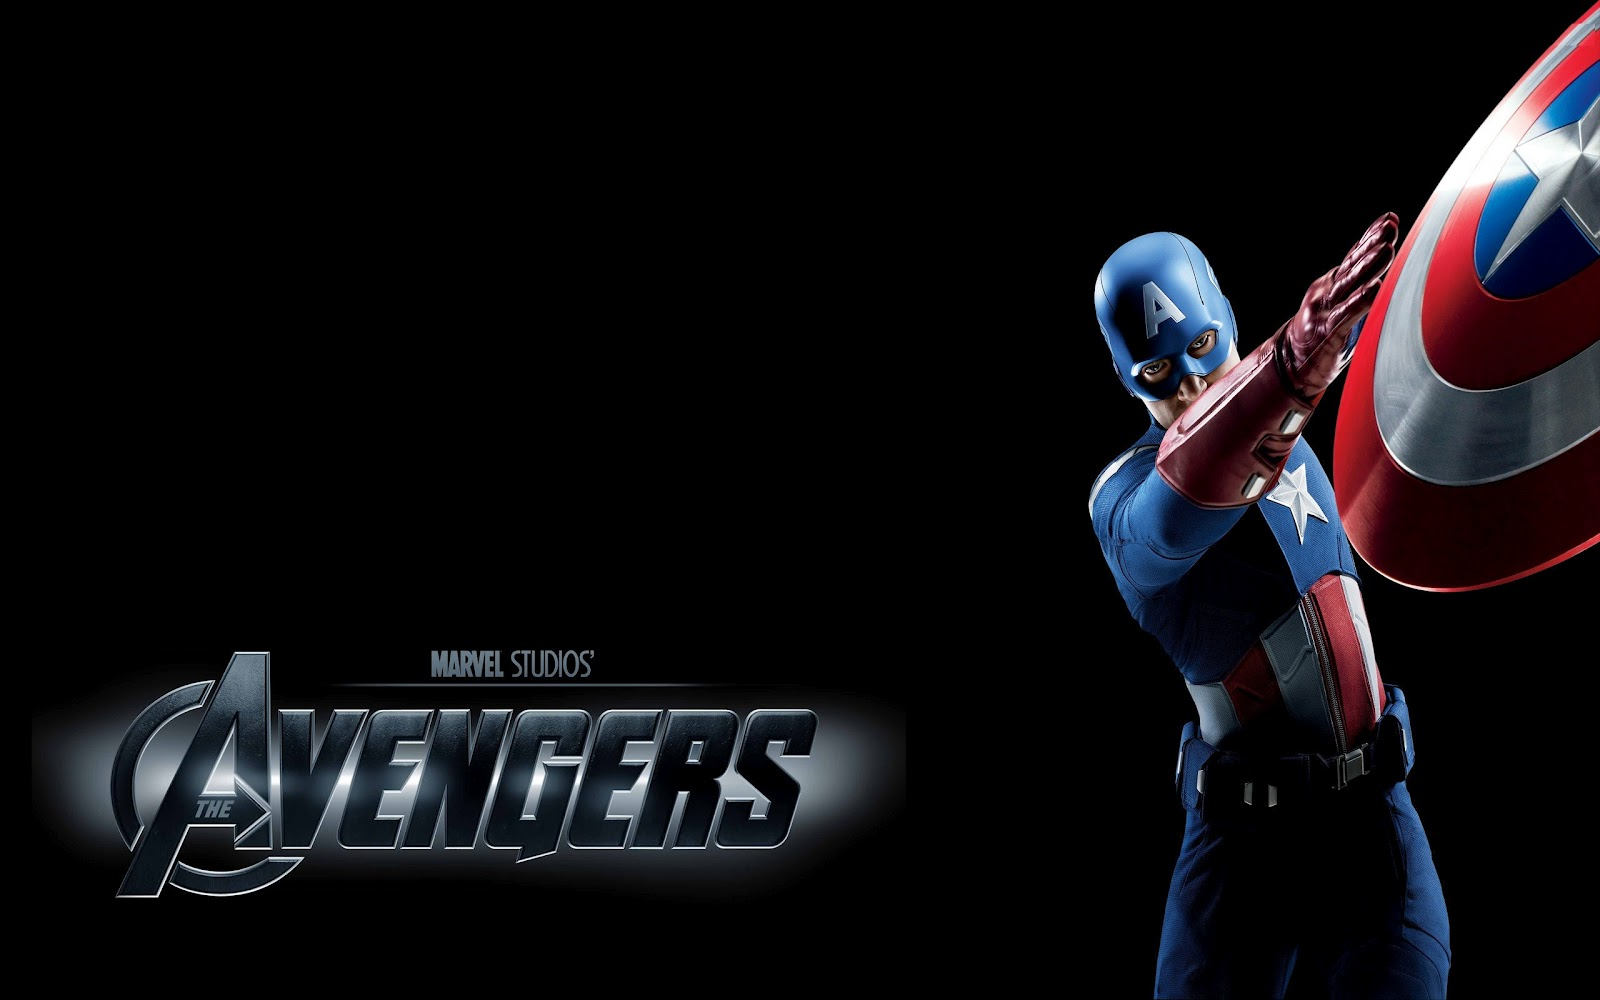 http://3.bp.blogspot.com/-_AcWQ3l46dg/T6F_w39HbYI/AAAAAAAAEAs/2nM3nz4o5xE/s1600/avengers-wallpaper-movie-e-wlpr.com-captain-america.jpg